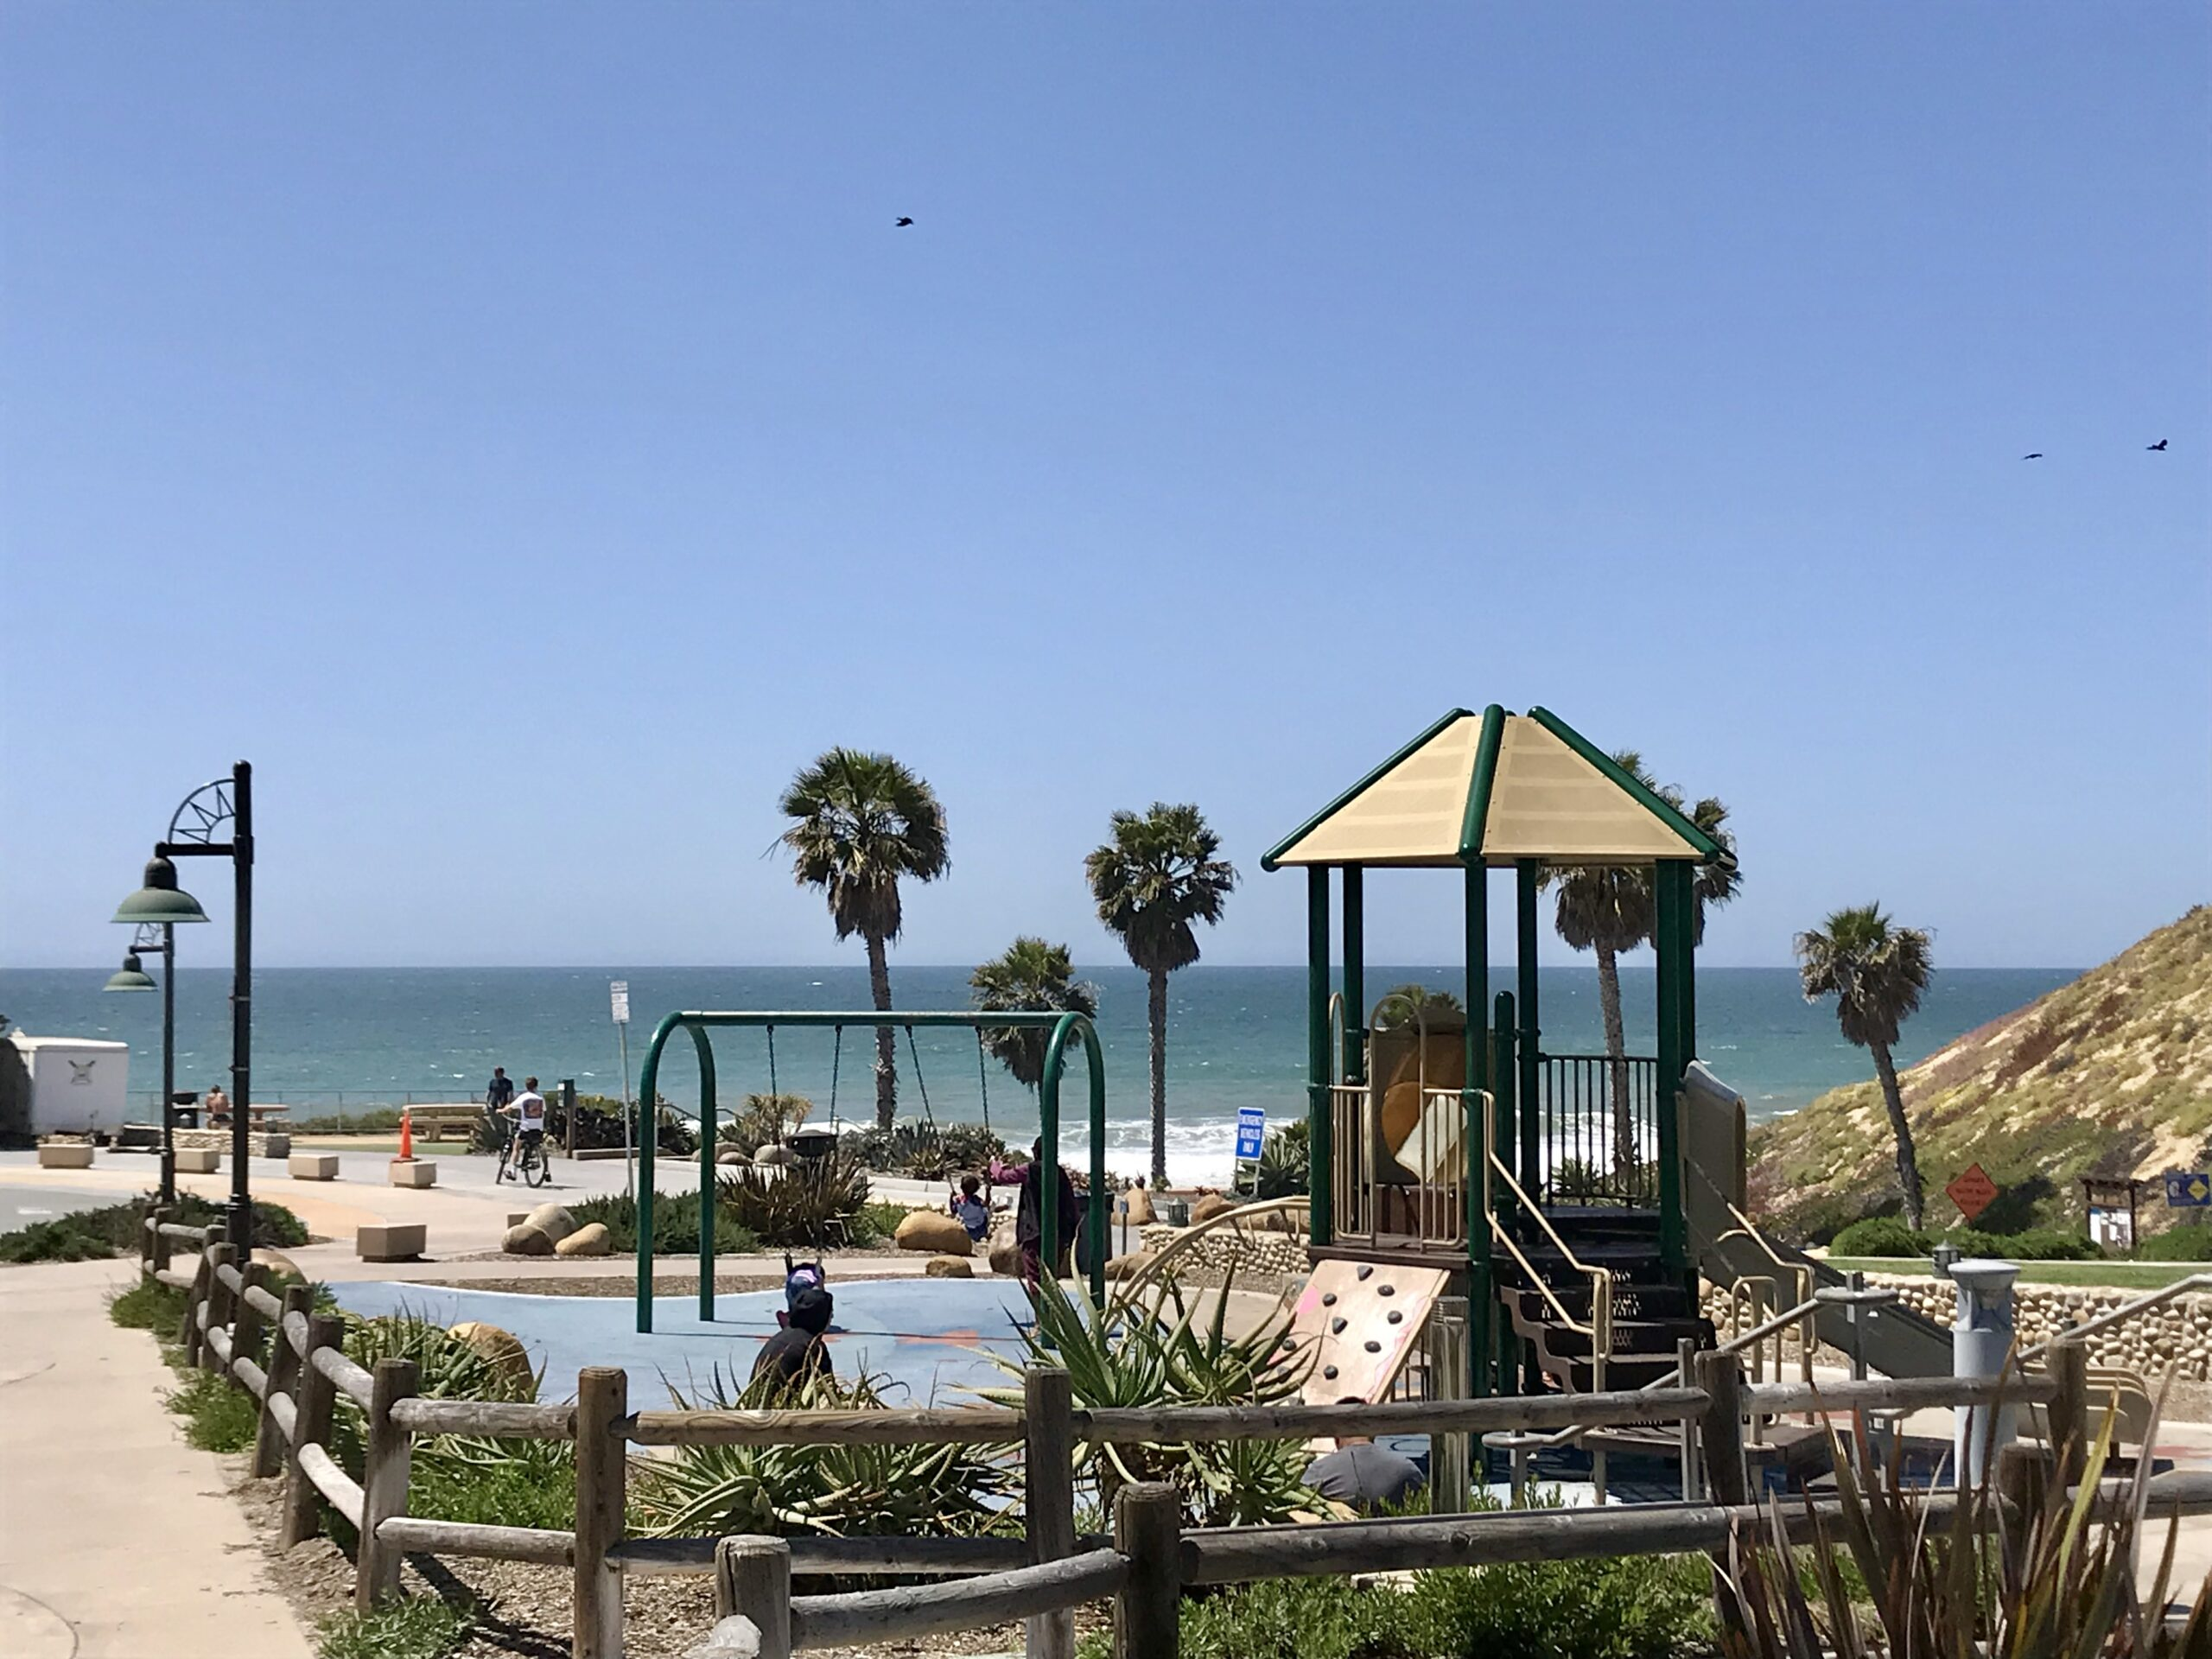 Playgrounds at the beach in North County San Diego | Graham and Kelly Levine